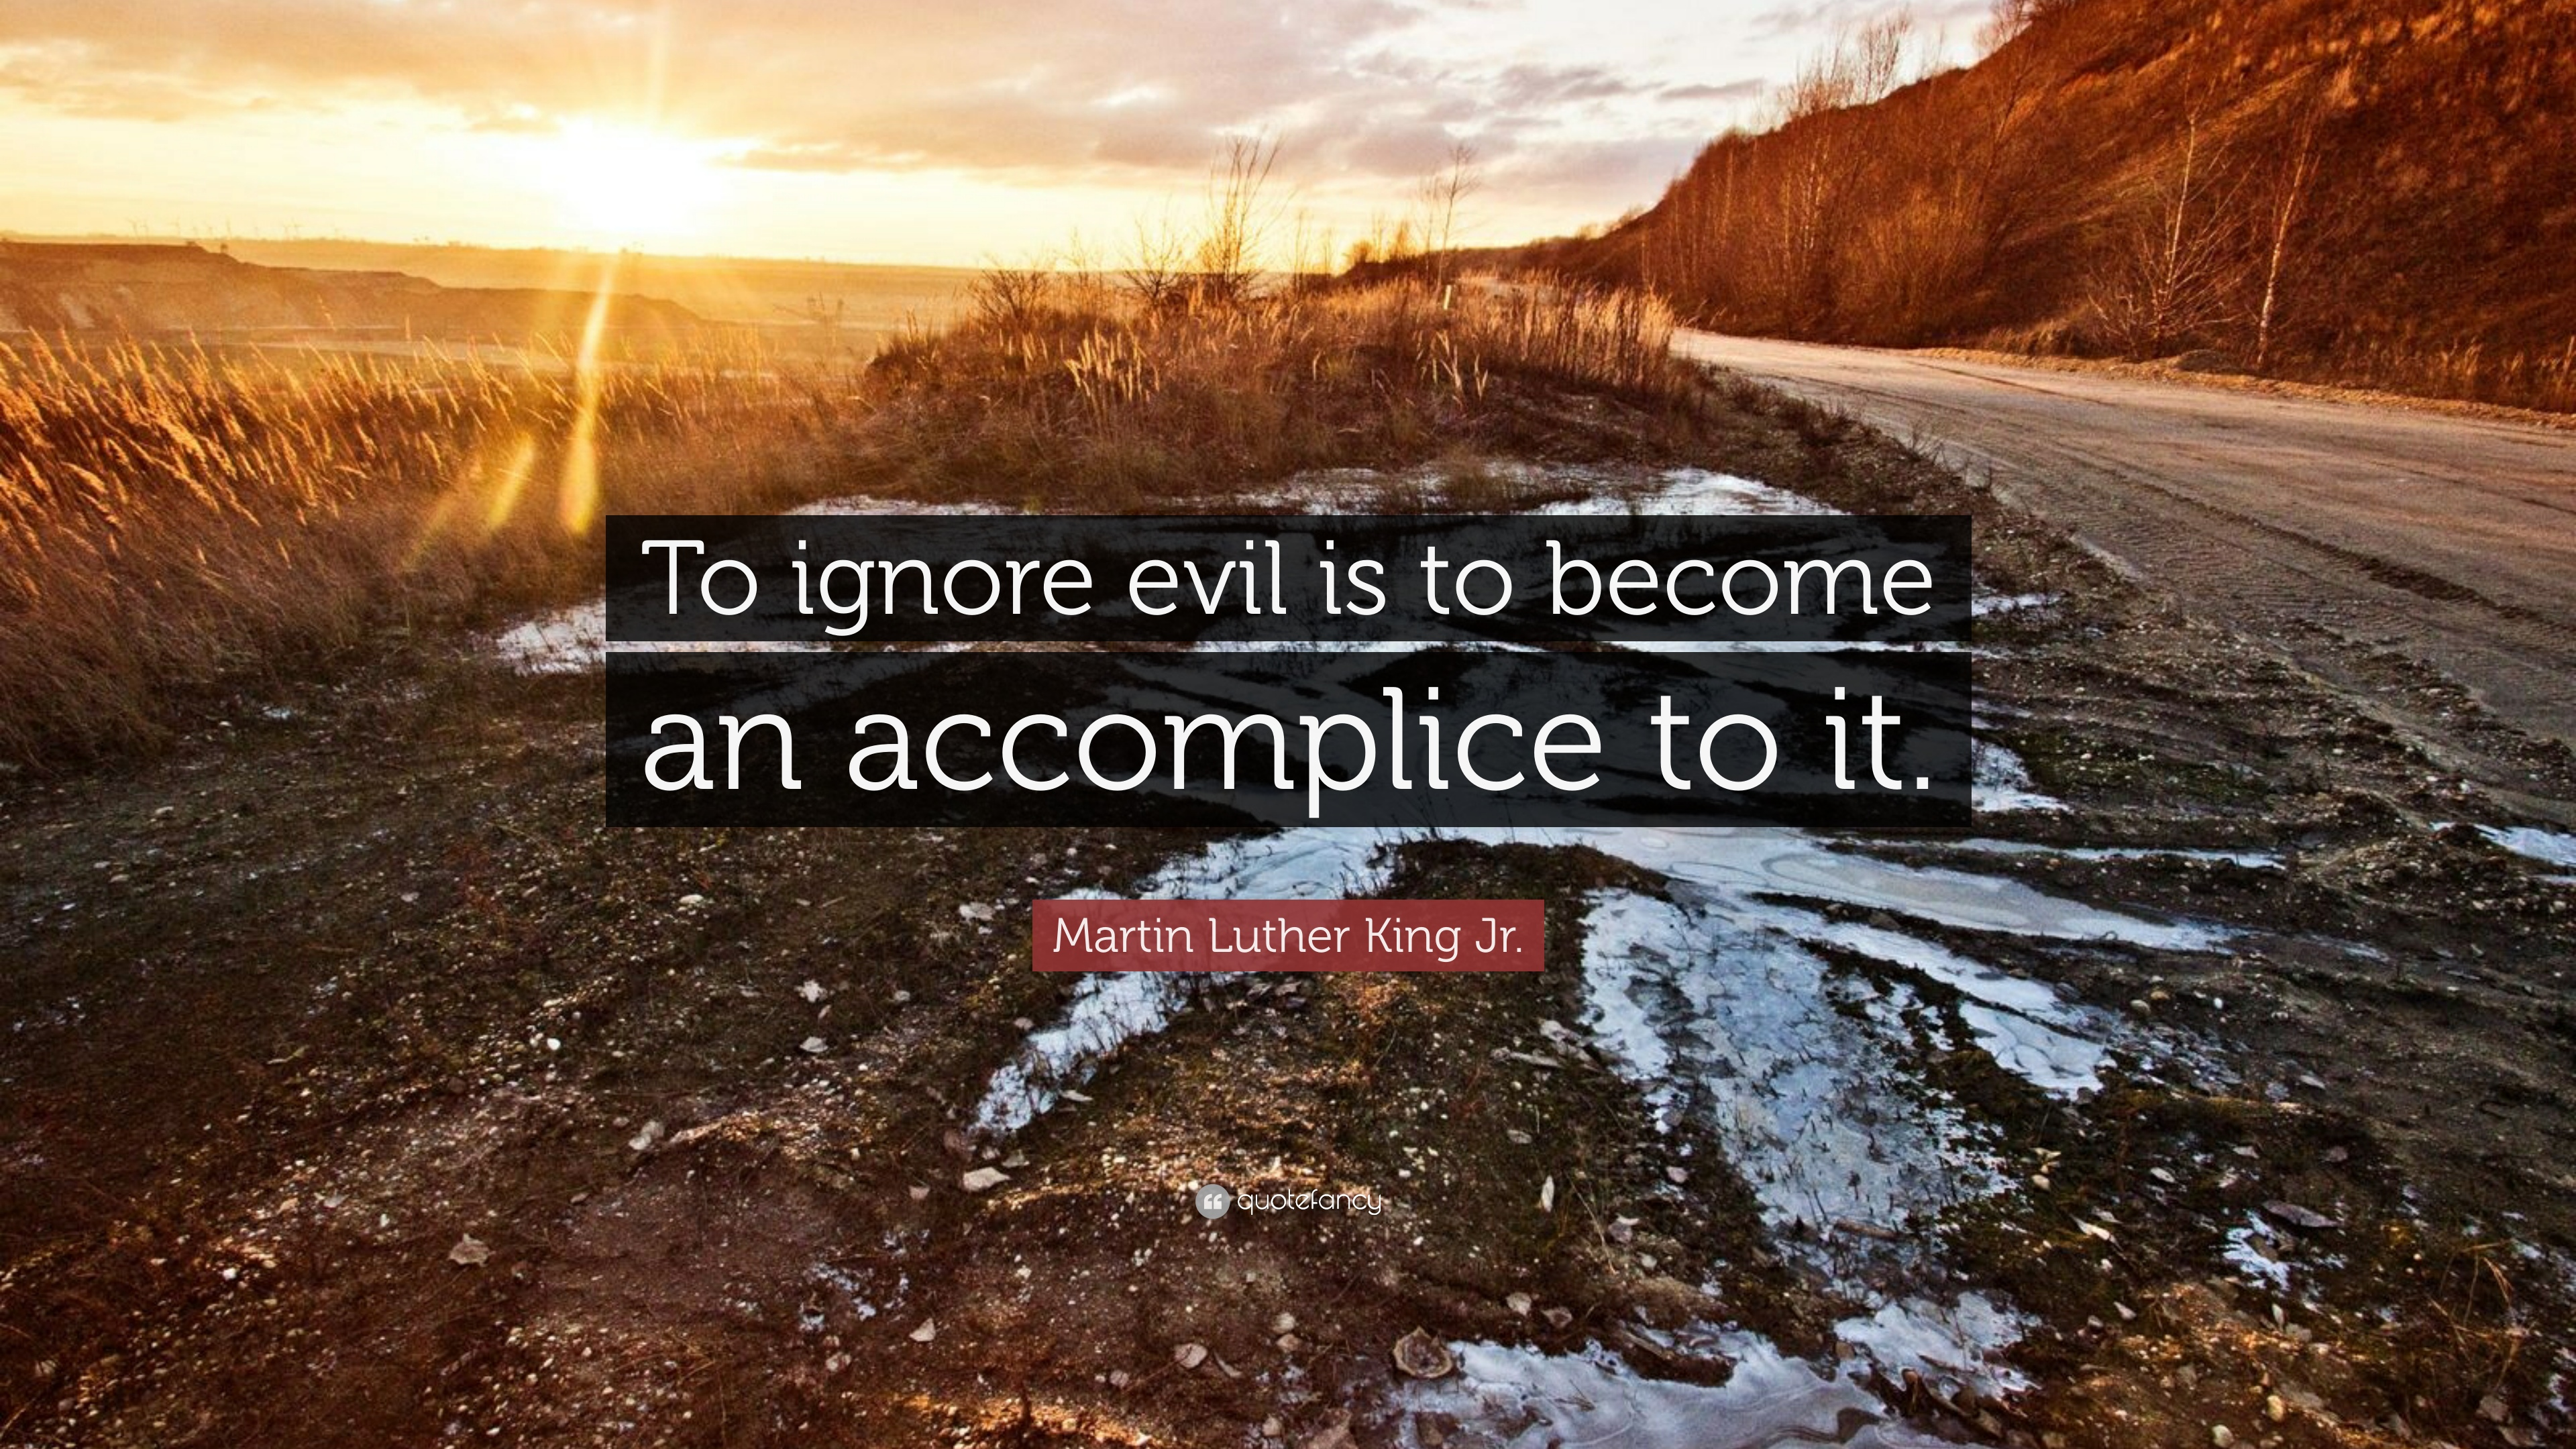 Martin Luther King Jr Quote To Ignore Evil Is To Become An